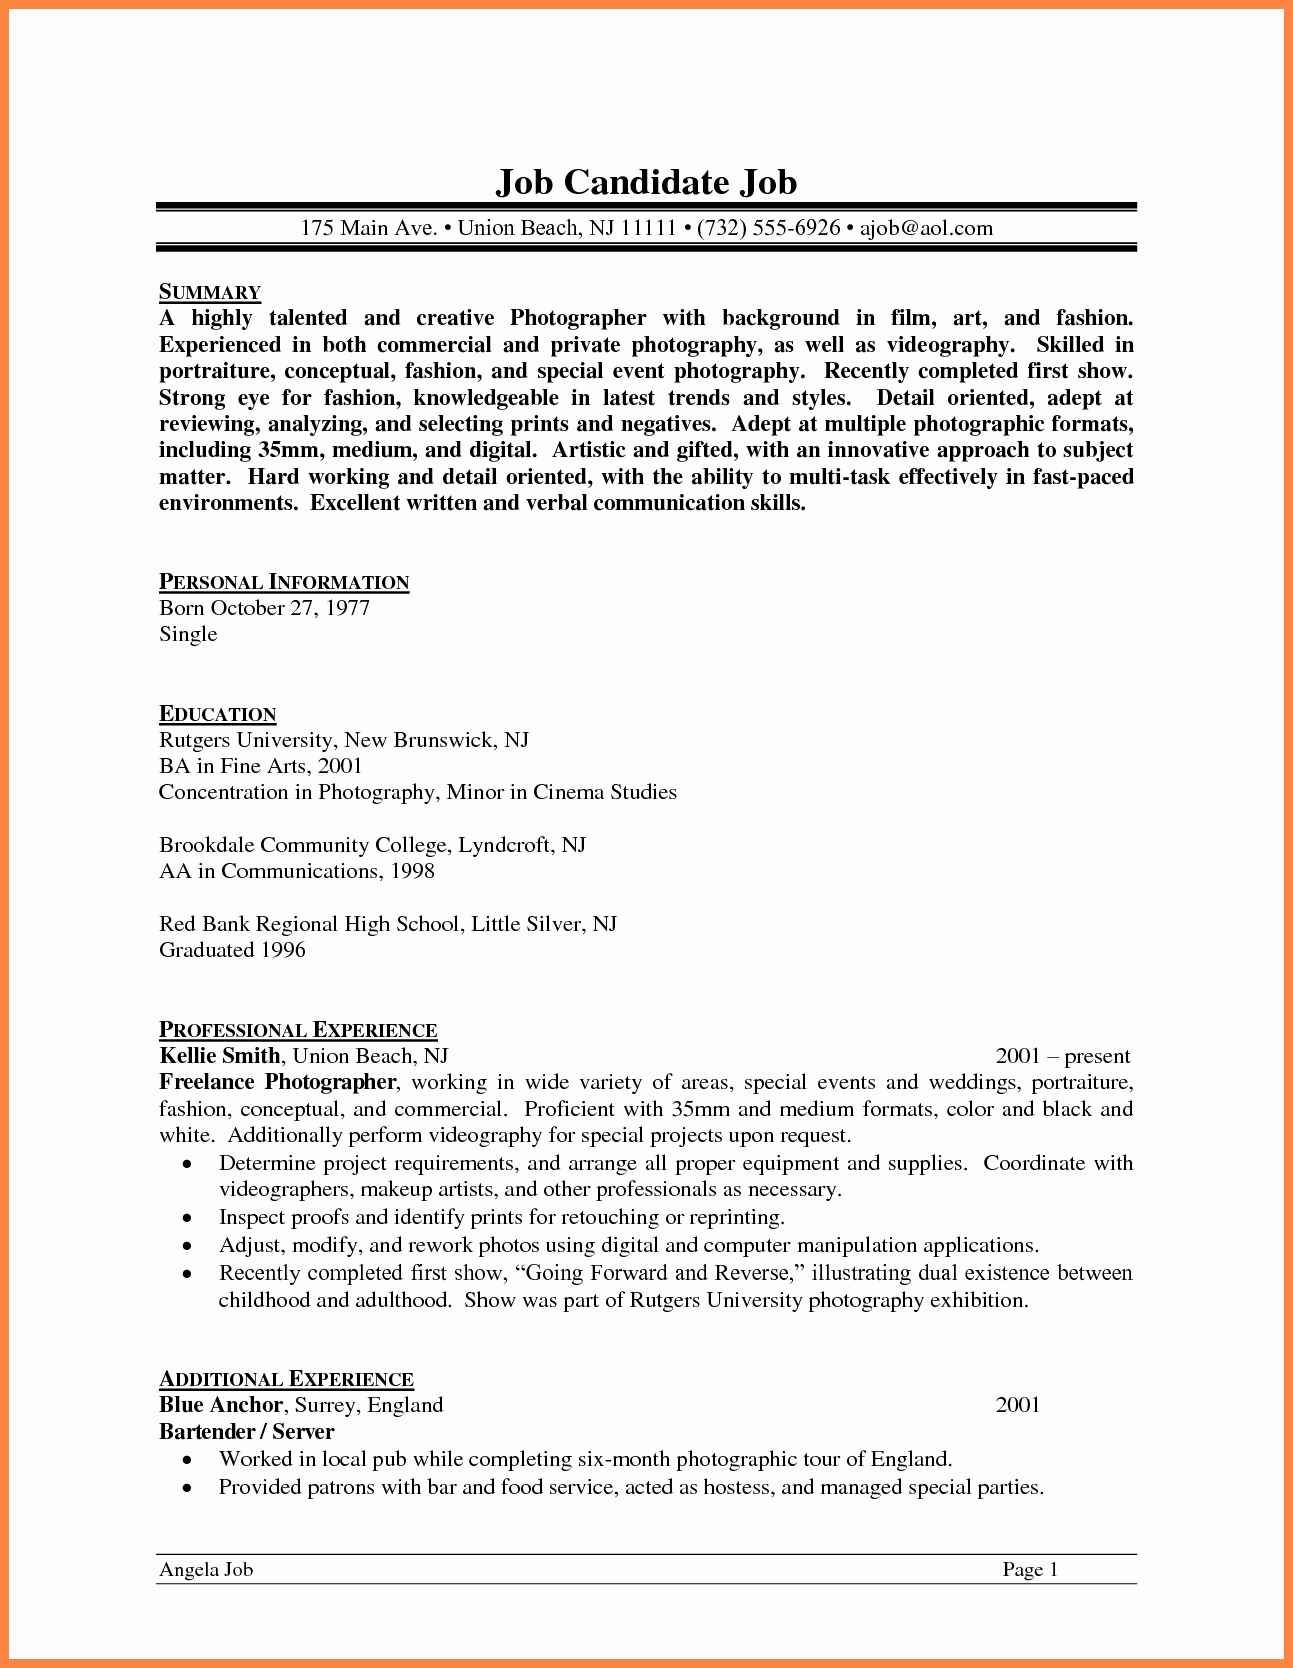 pin on create videographer job description resume cpm basic layout typing and service Resume Videographer Job Description Resume